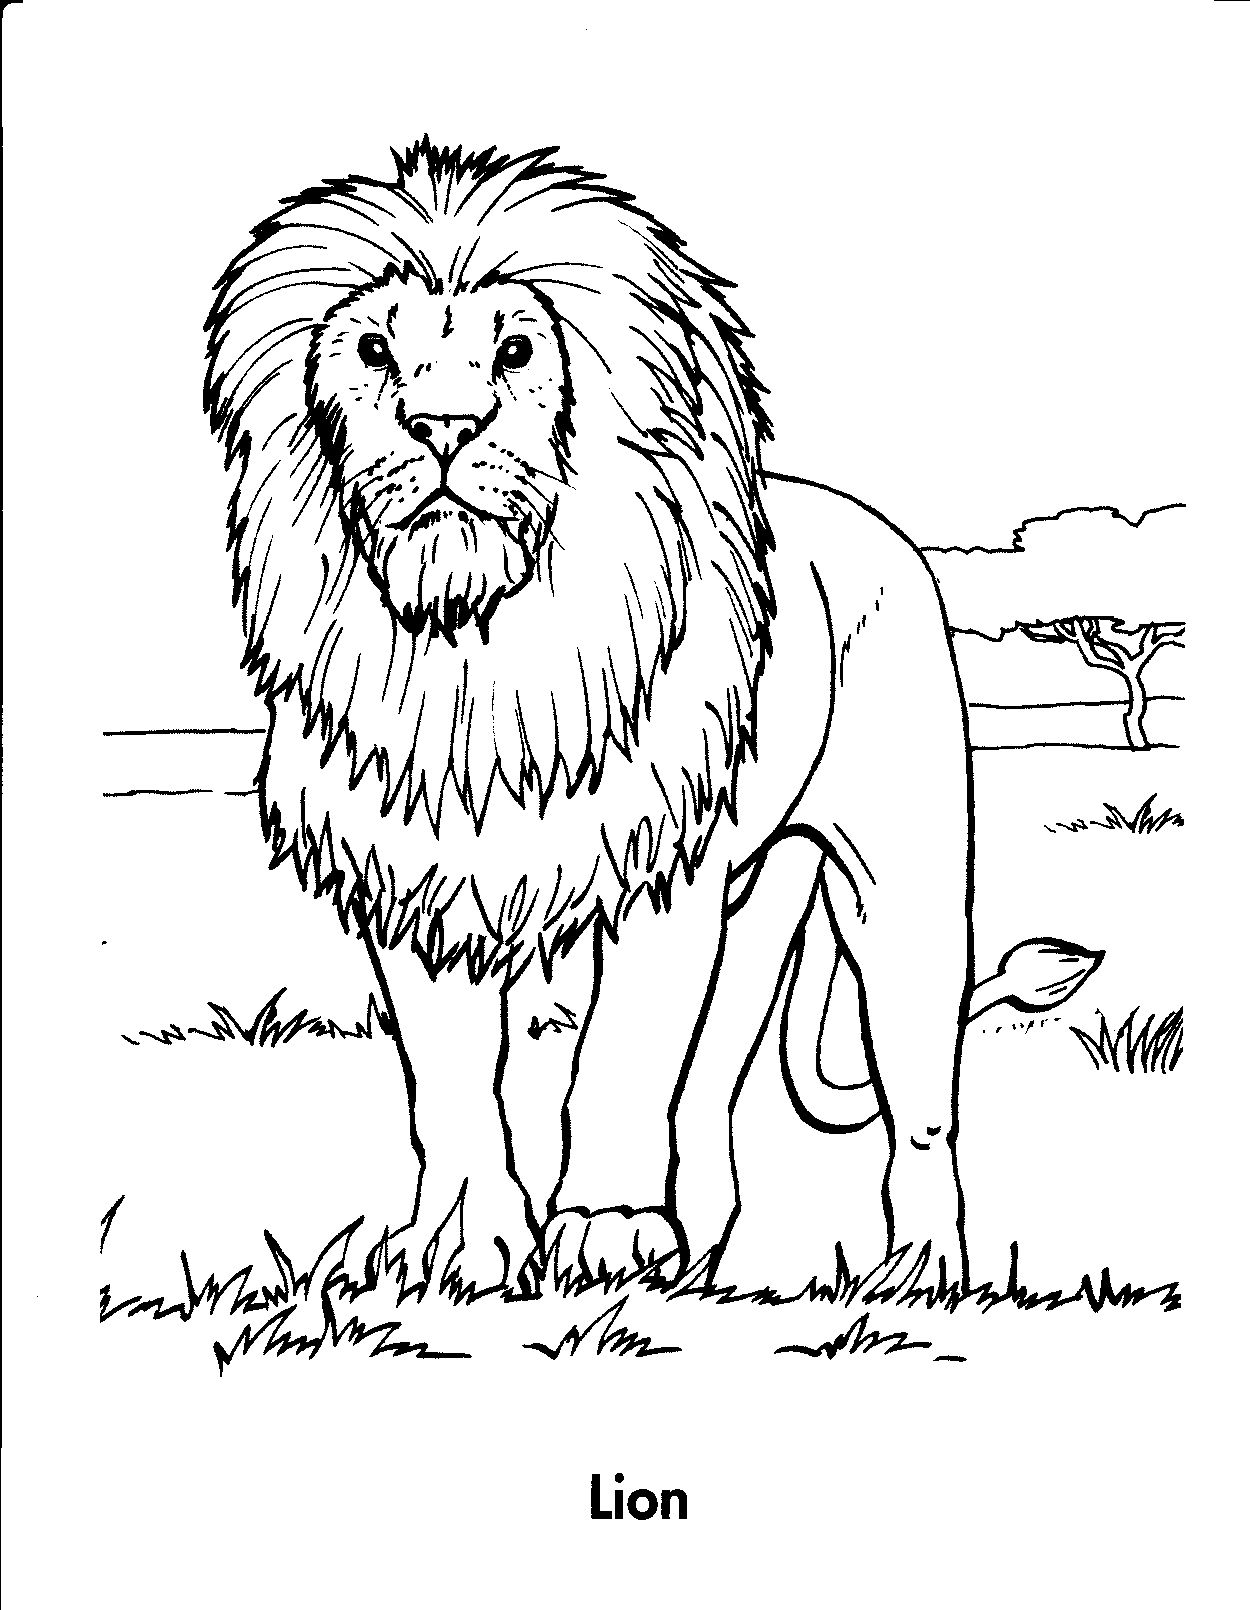 coloring pages - Animals » Cat (63) - Lion | Zoo coloring pages, Animal  coloring books, Lion coloring pages